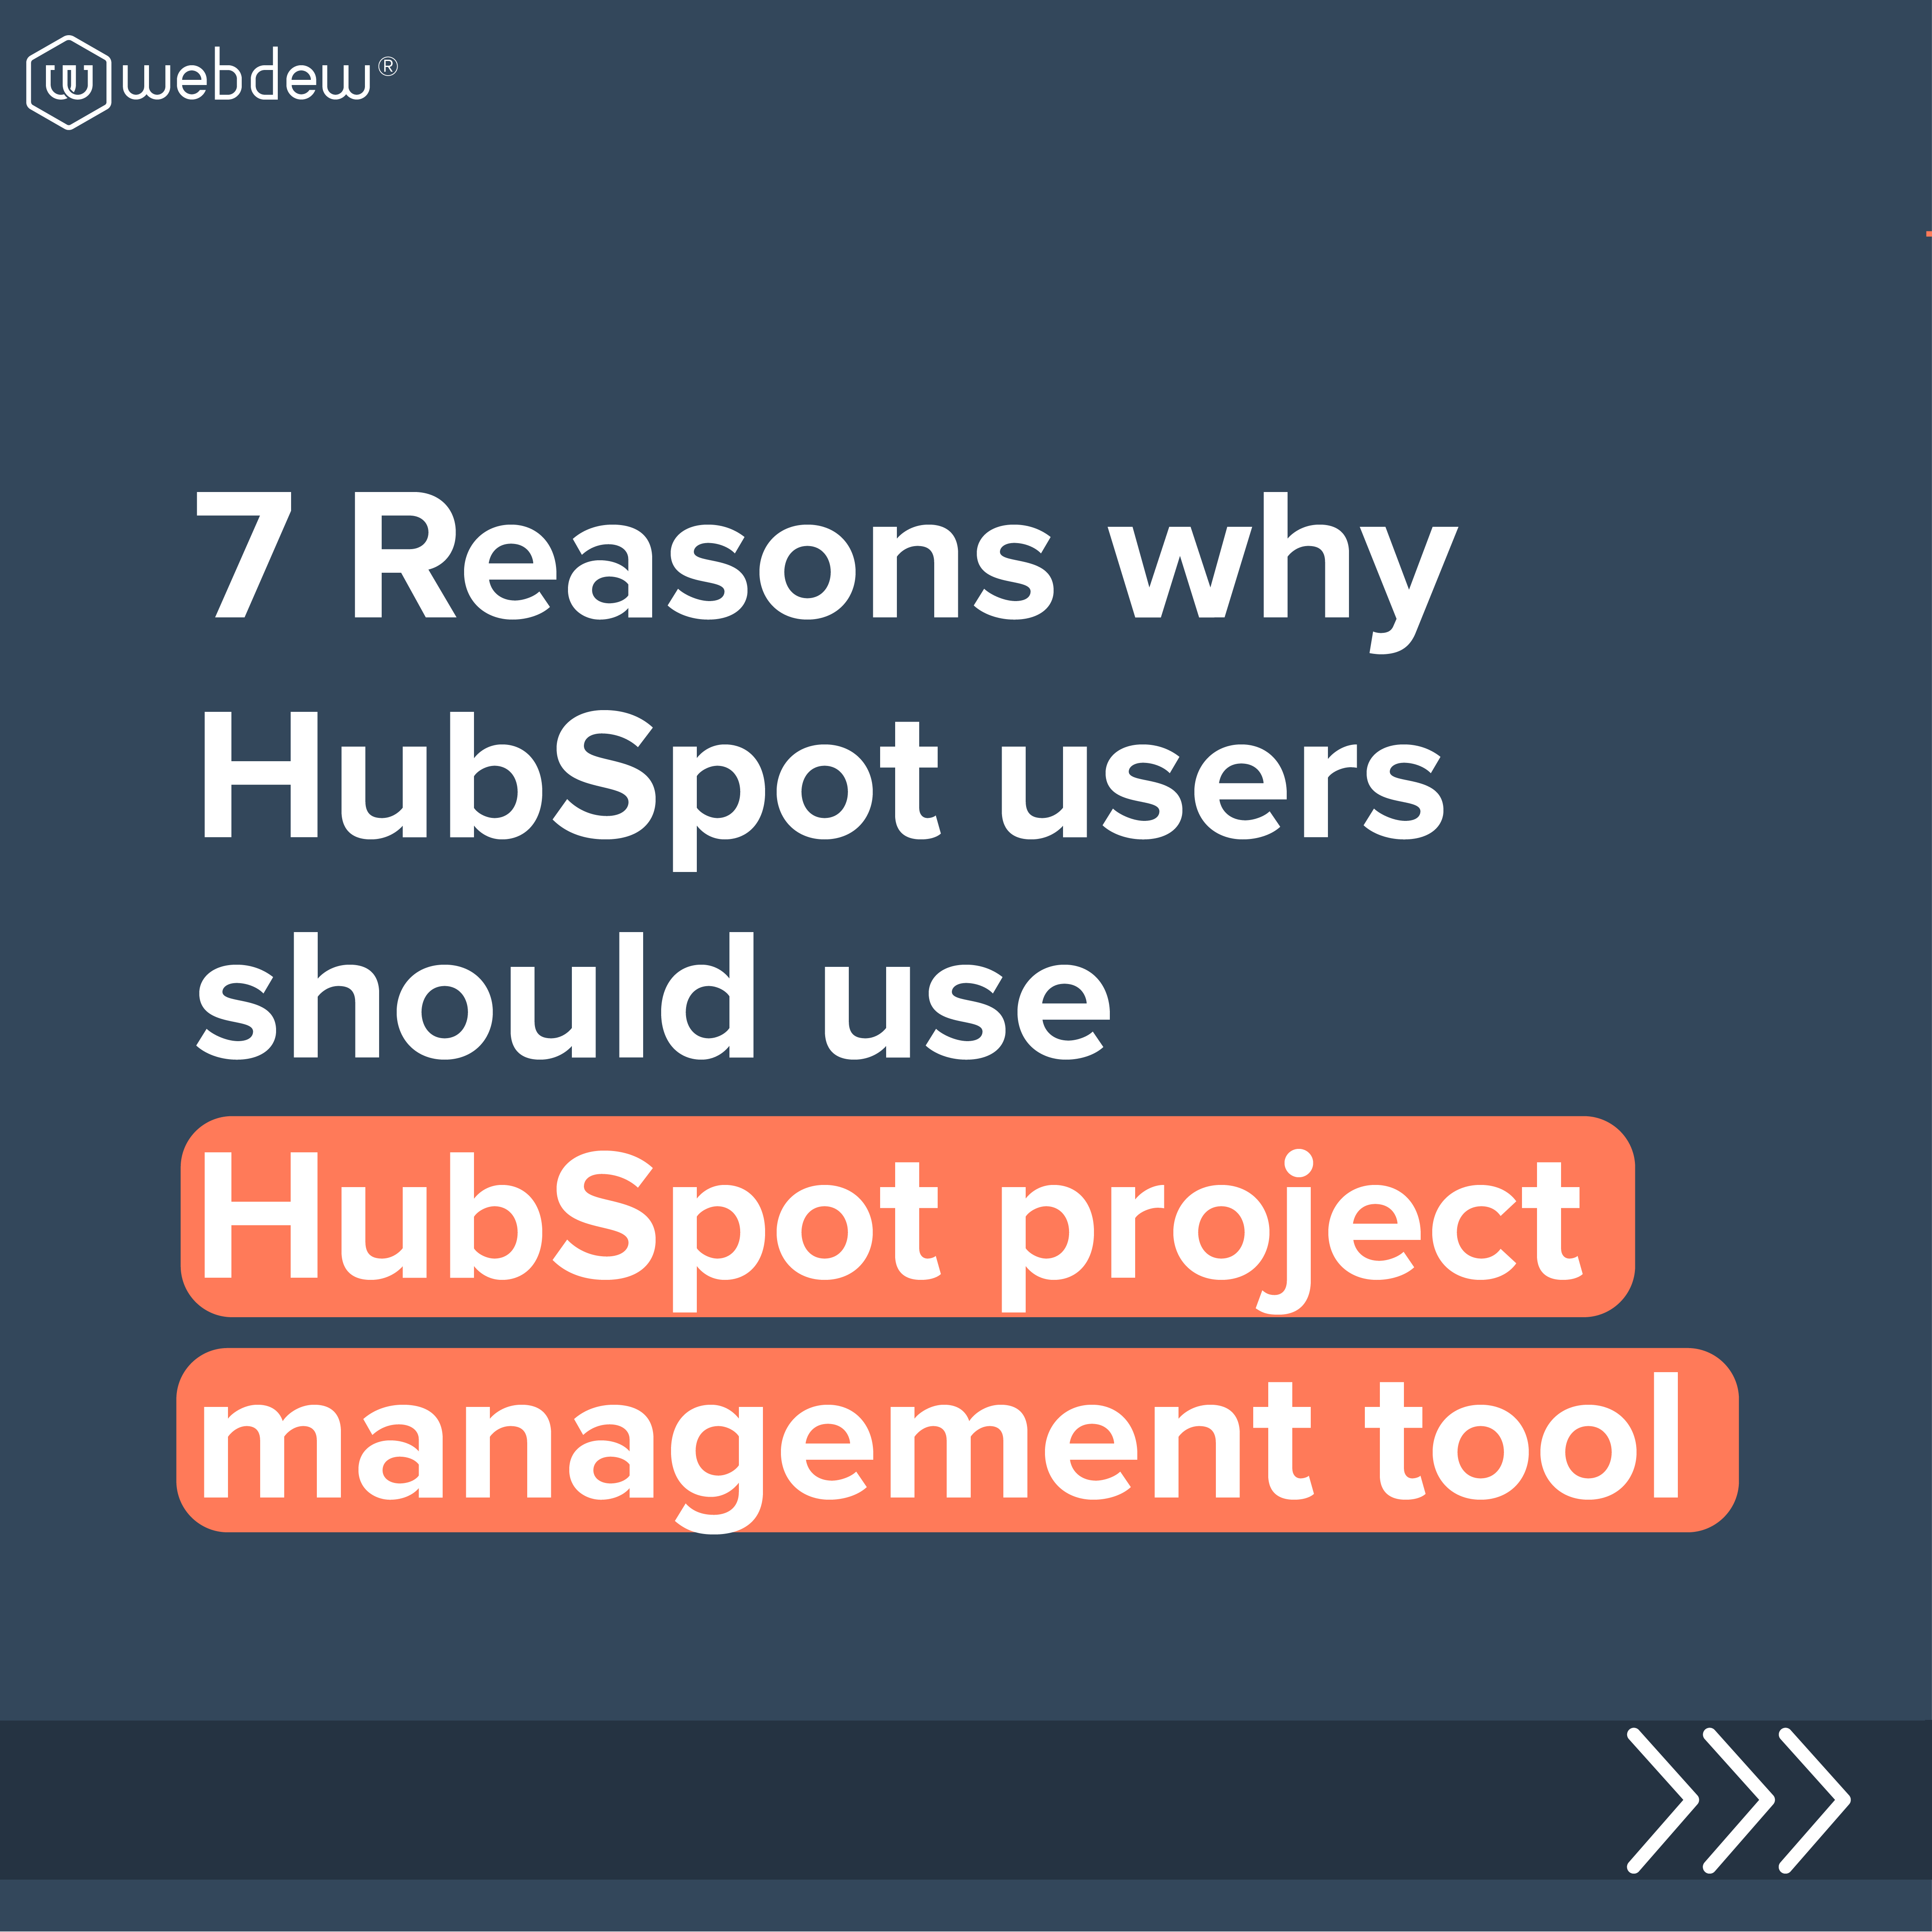 7 reasons why hubspot users should use hubspot project management tool-01